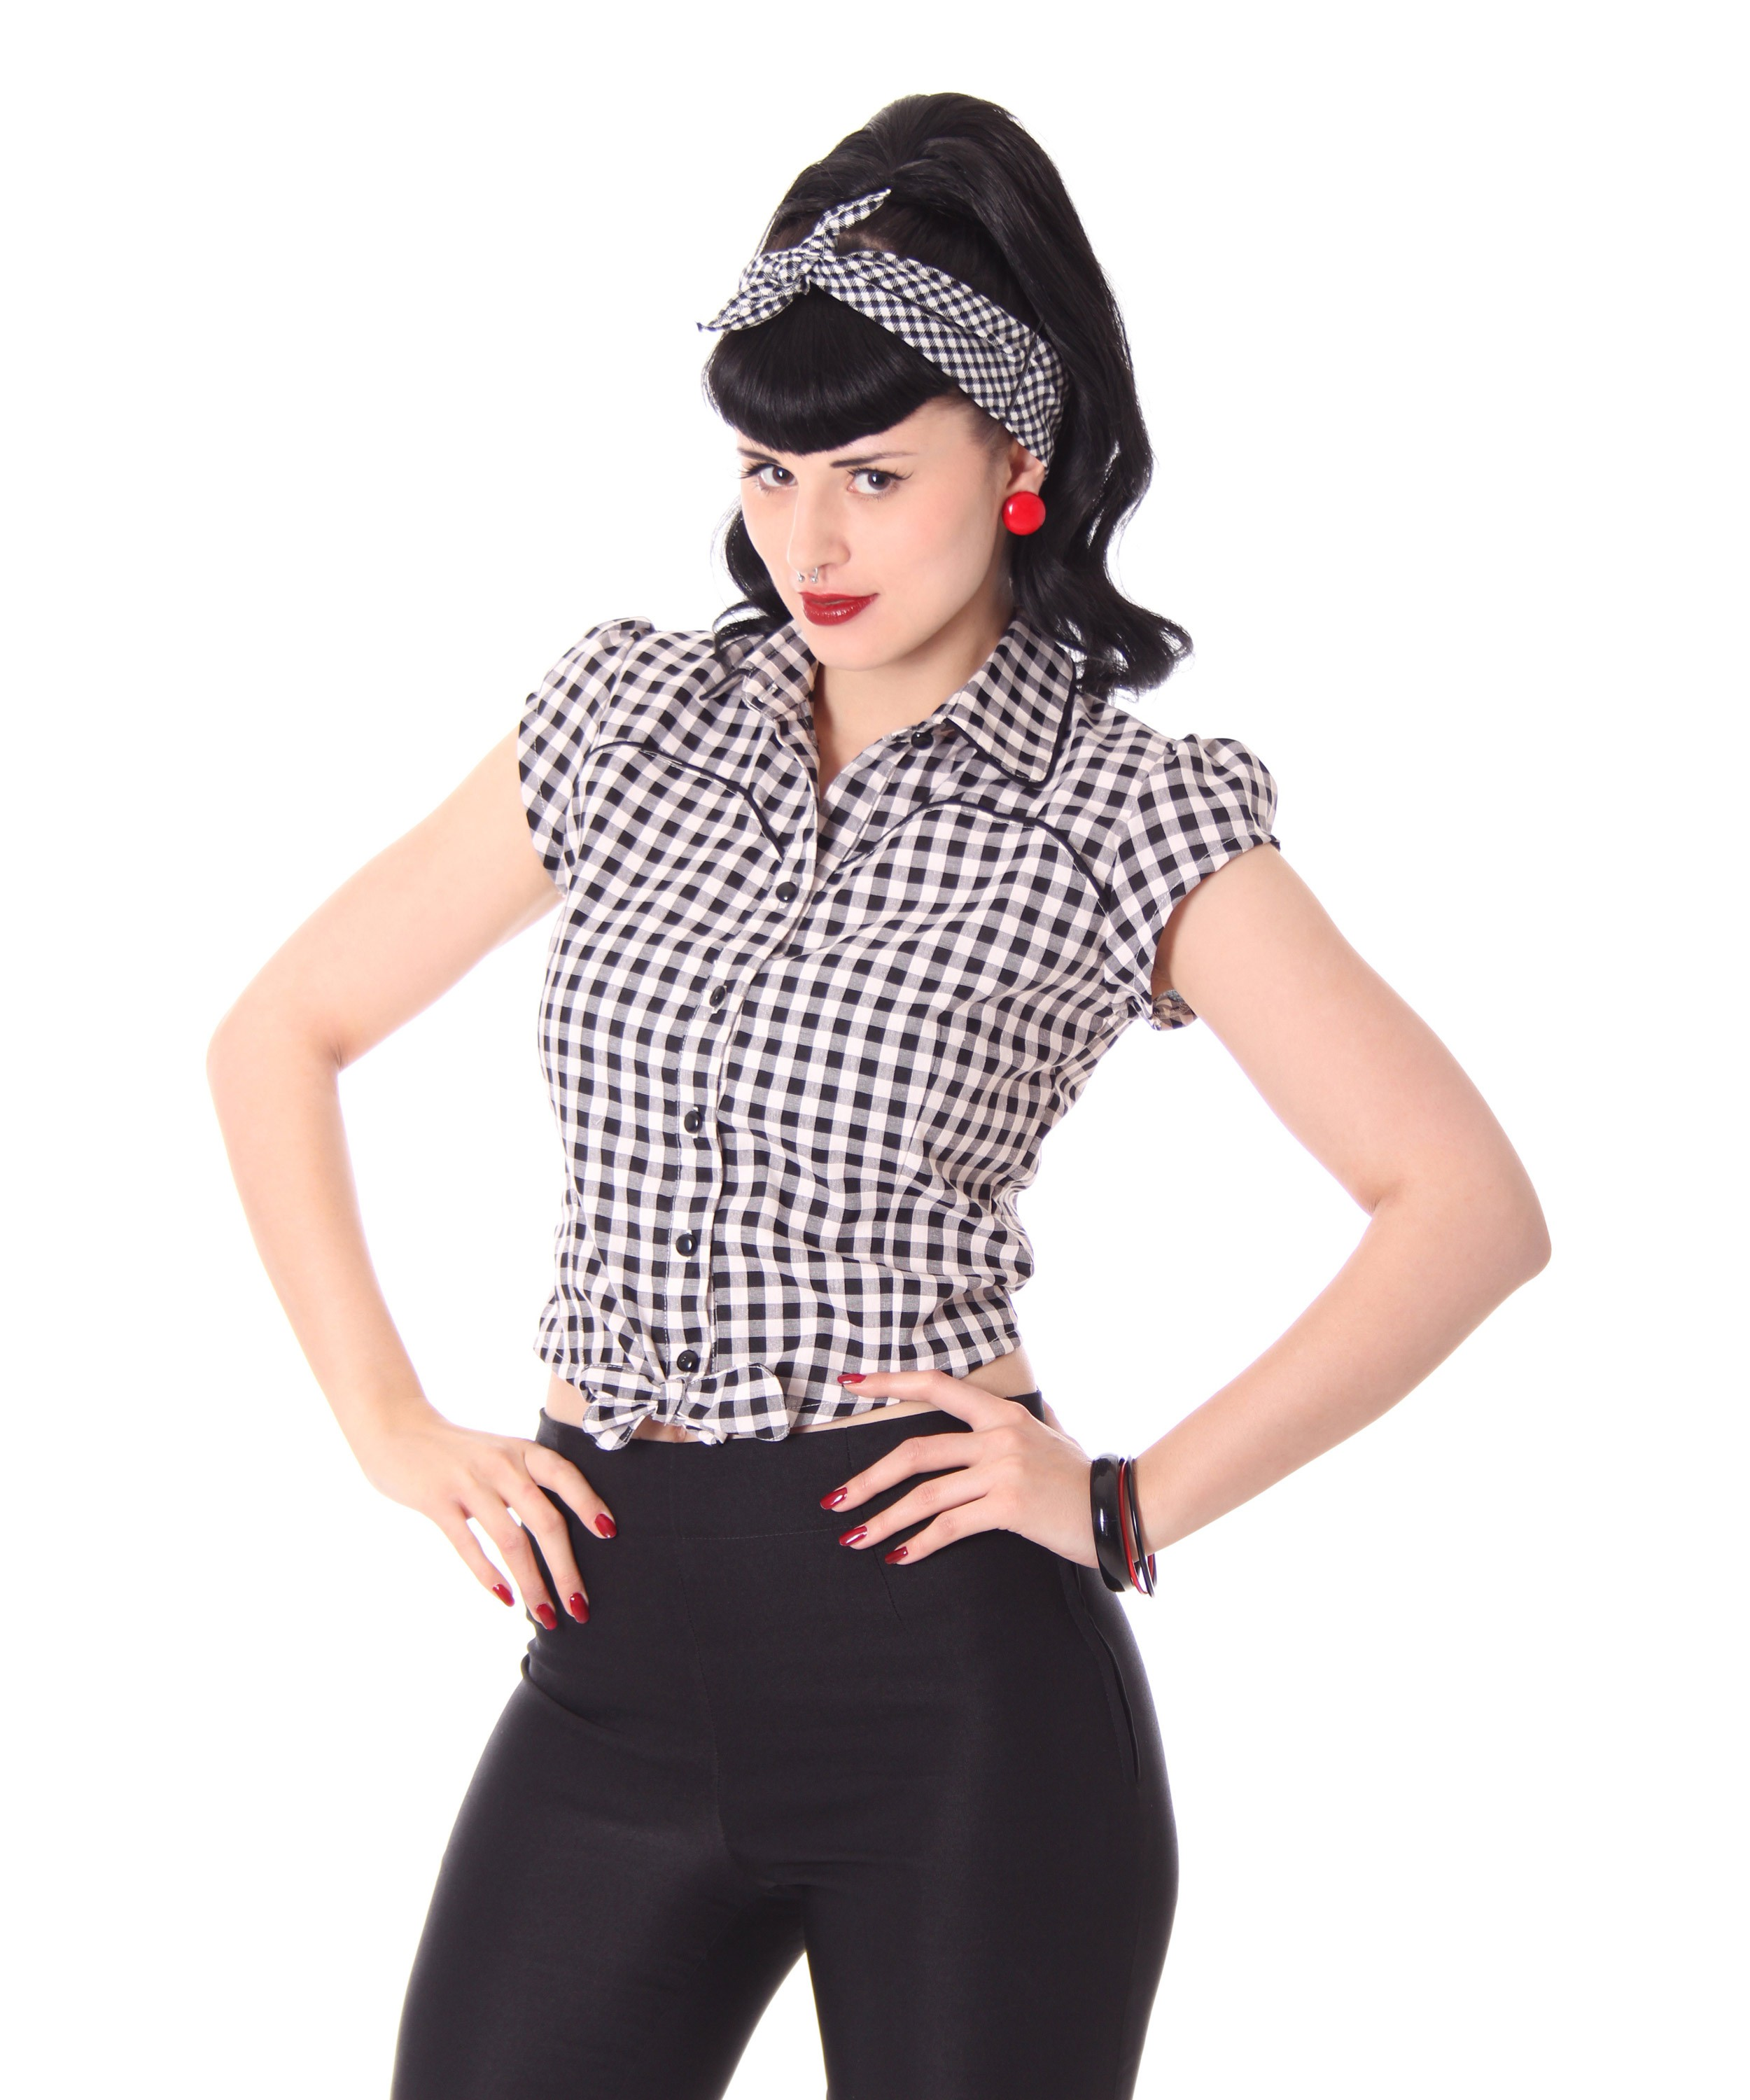 julina 50s pin up style retro gingham binde bluse v sugarshock frauen hemden blusen. Black Bedroom Furniture Sets. Home Design Ideas